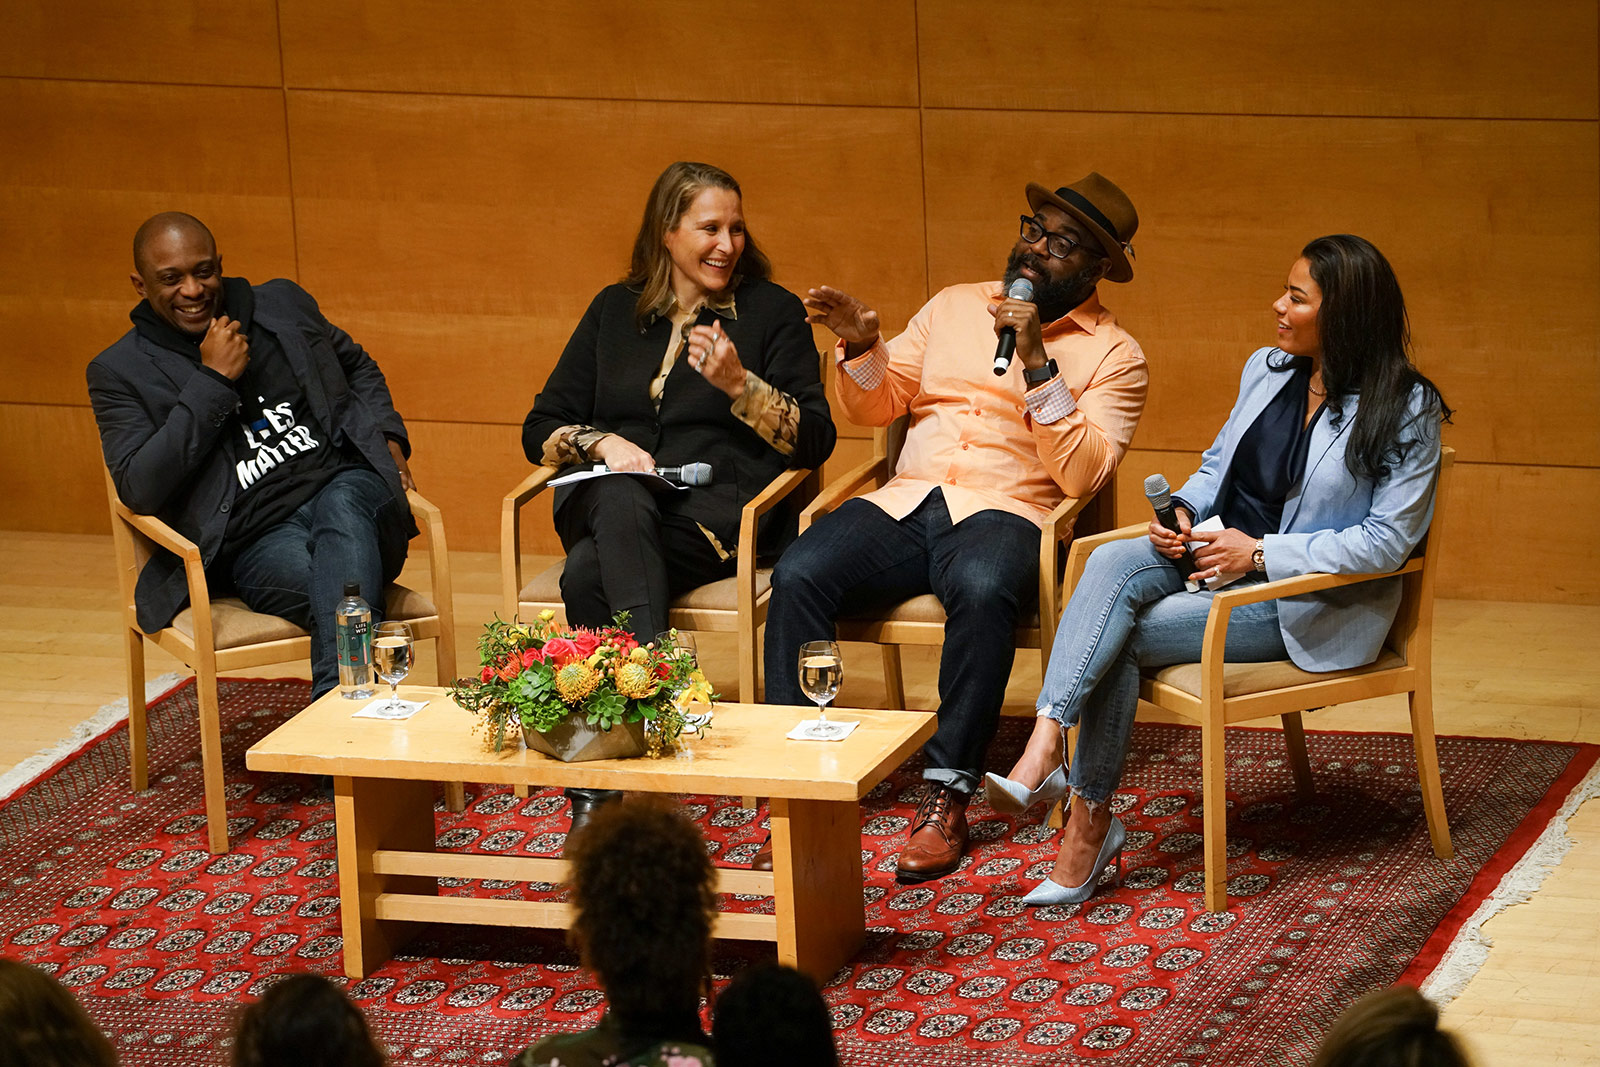 Four people sit on a stage as part of a panel discussion